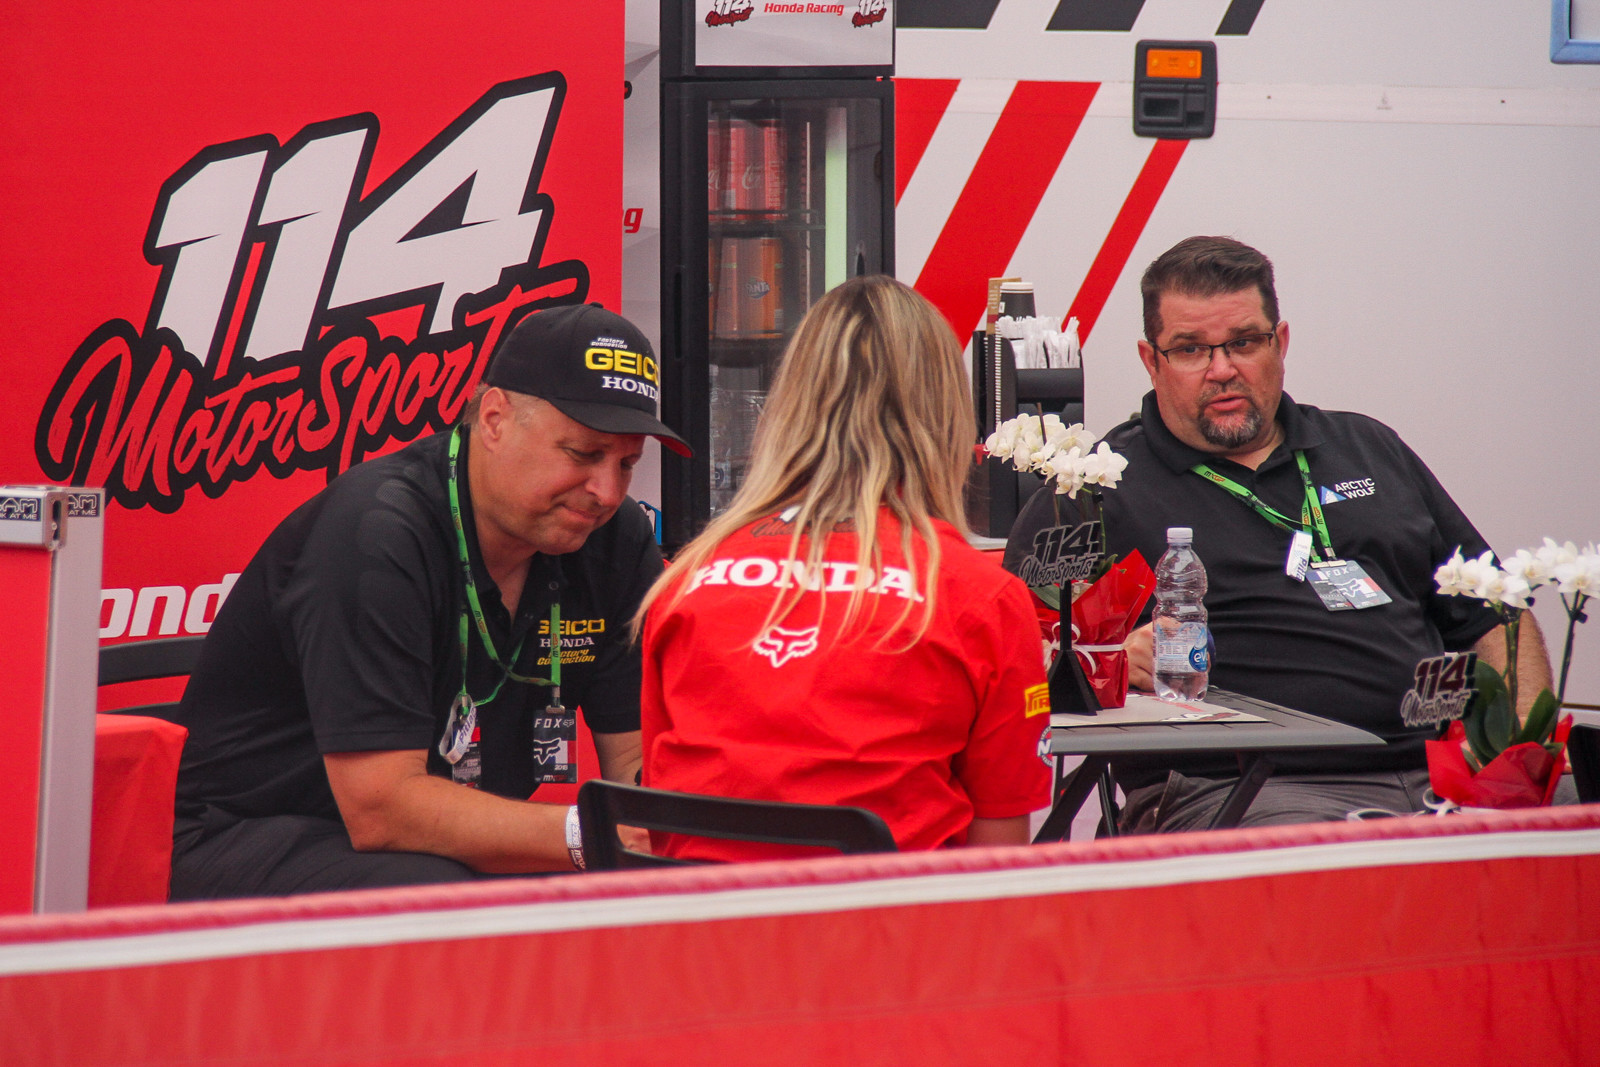 Some of Geico Honda's ownership was on hand to check out the GP and spent time under the 114 Honda Motorsports tent, as they have Hunter Lawrence signed for 2019 and on.